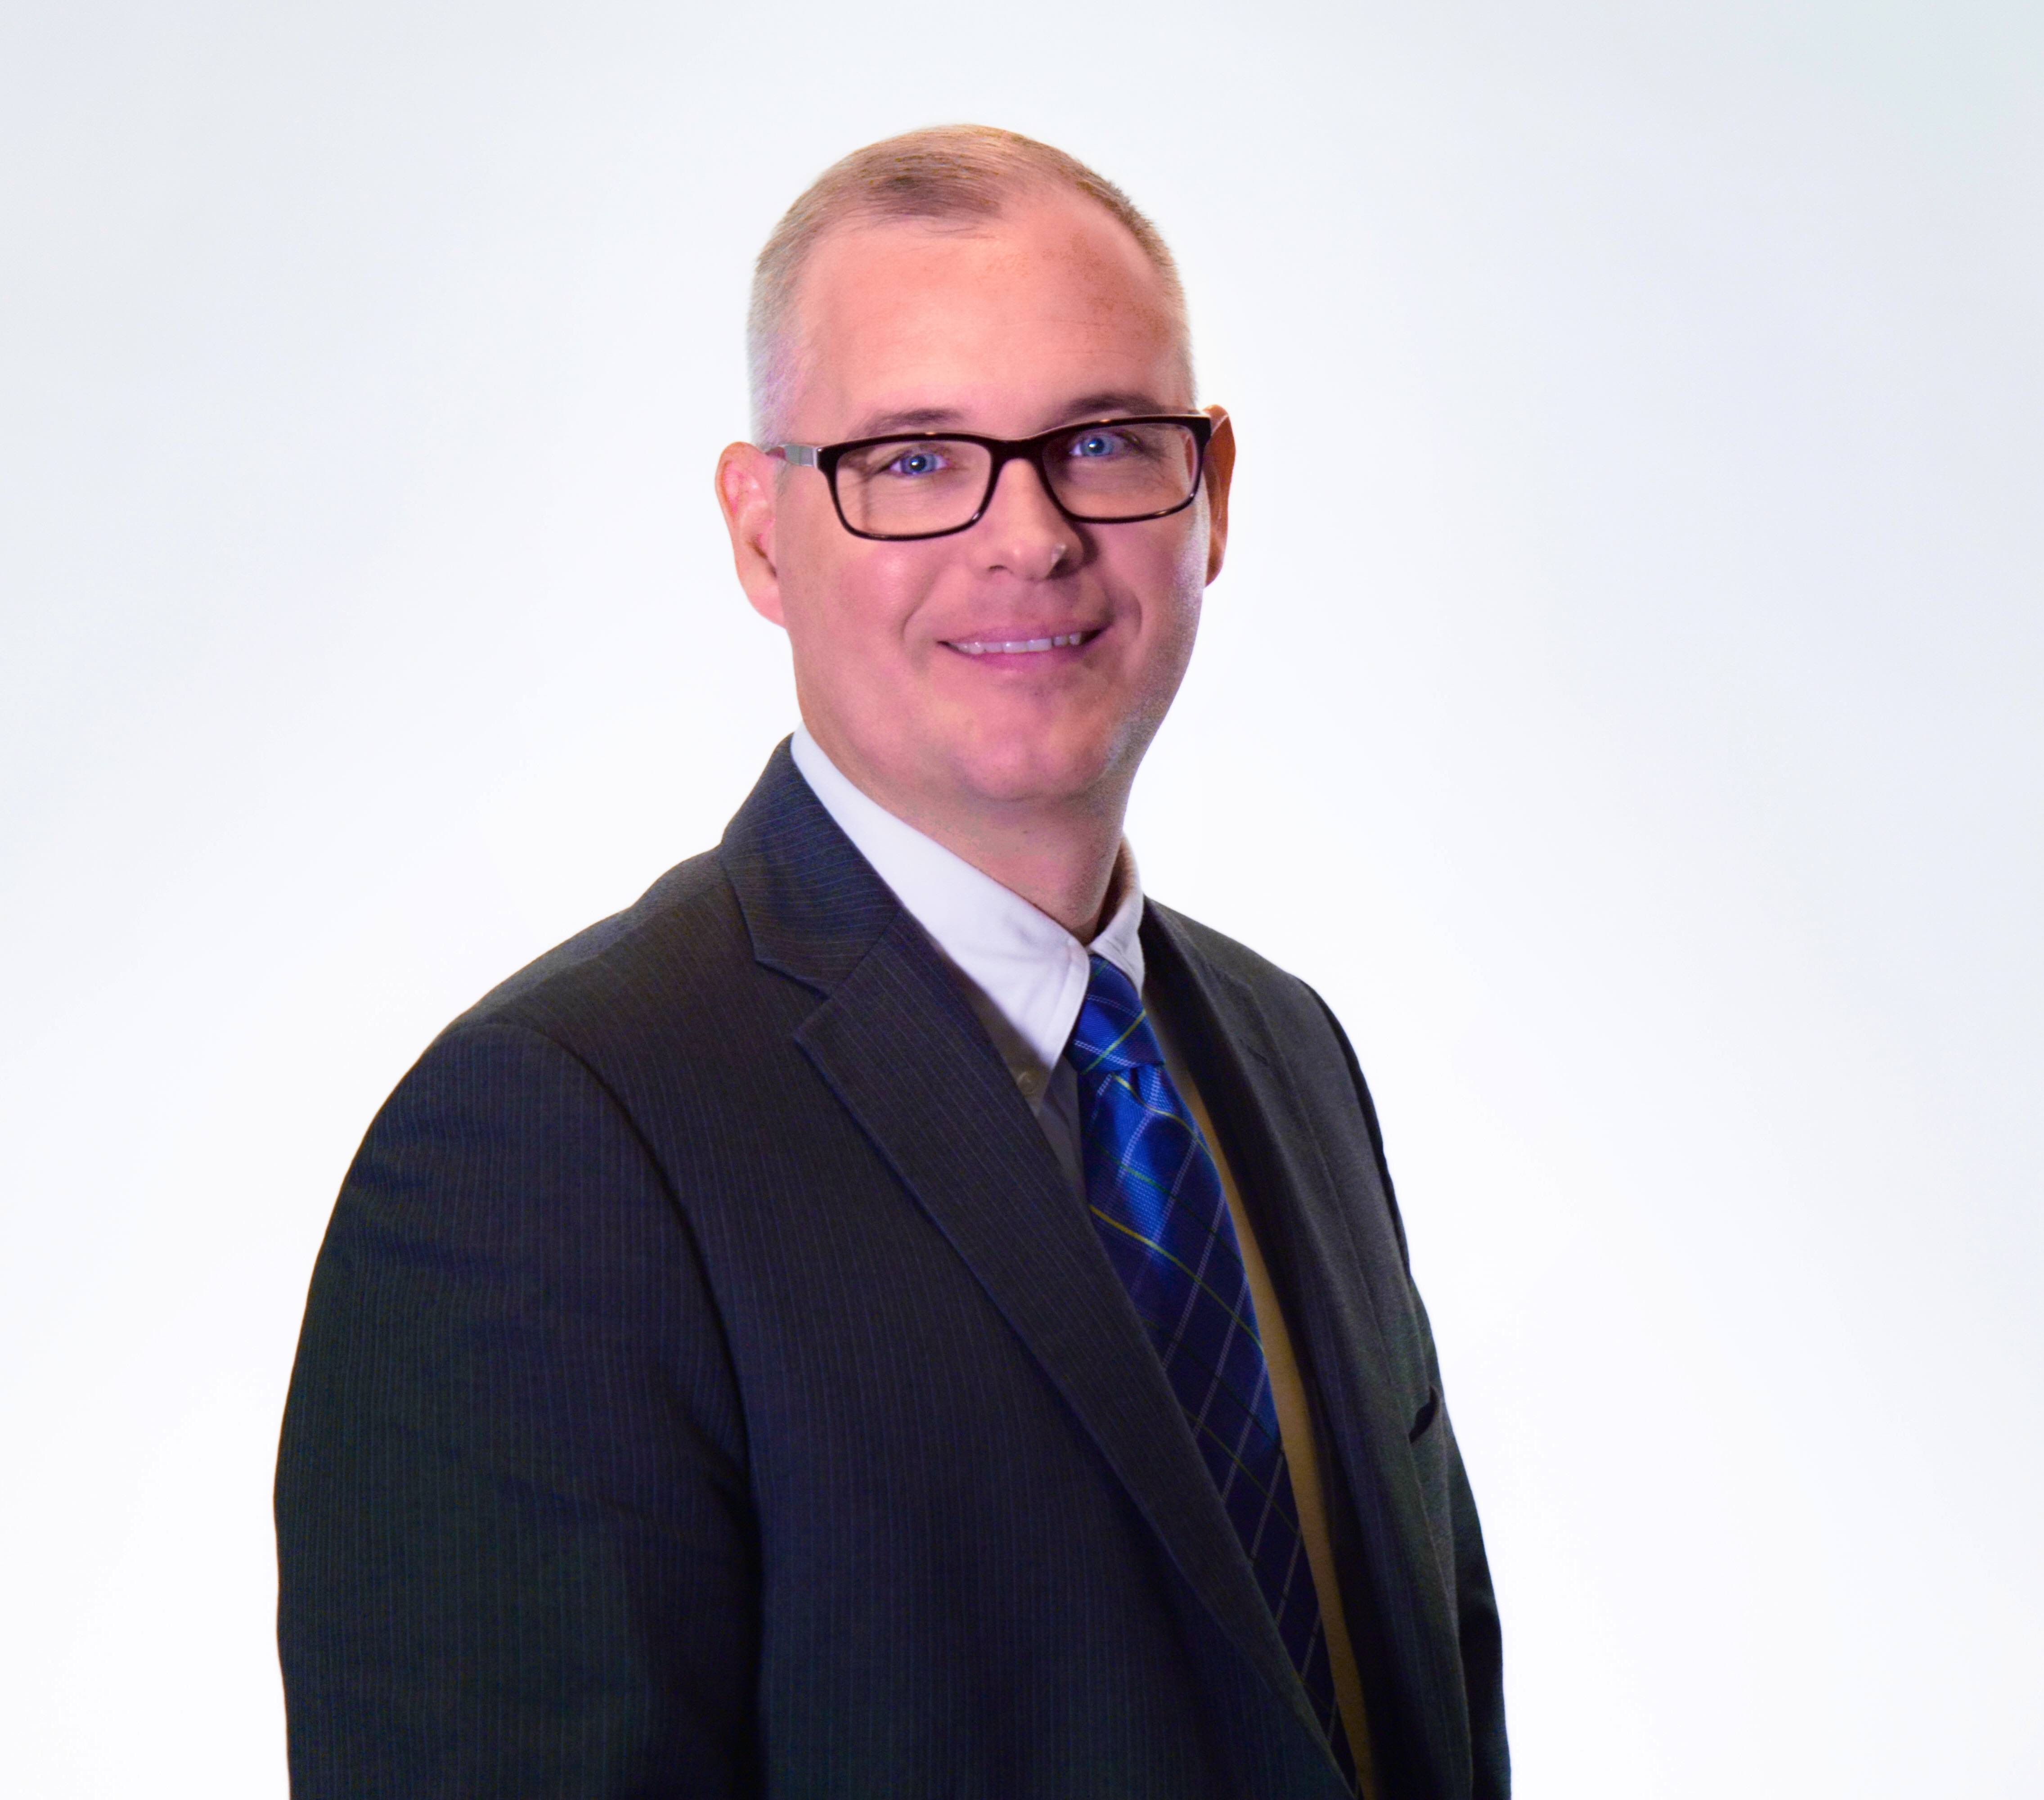 Real Estate Auction Firm Tranzon Driggers Promoted Kevin Weinsheimer to Chief Operating Officer